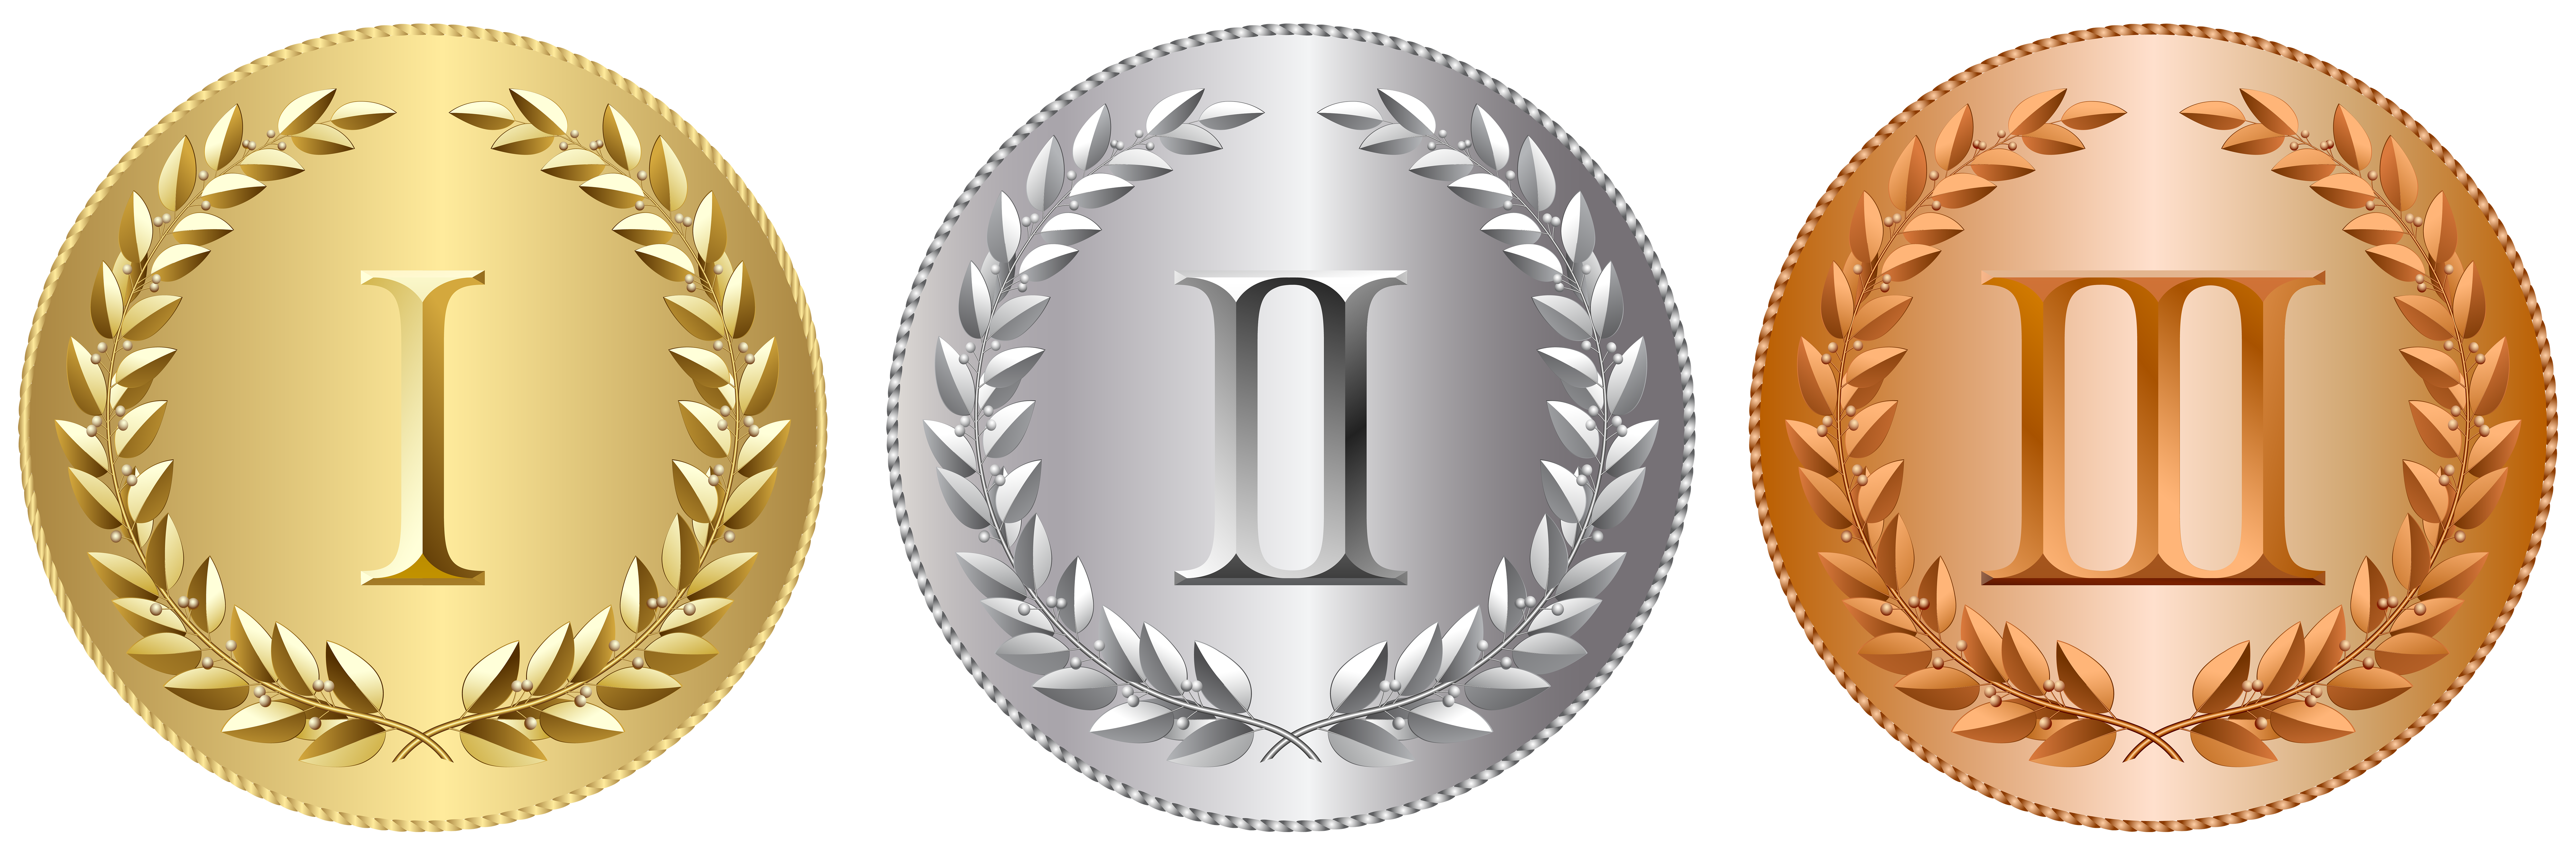 Coin clipart silver and gold View Image  full Clip